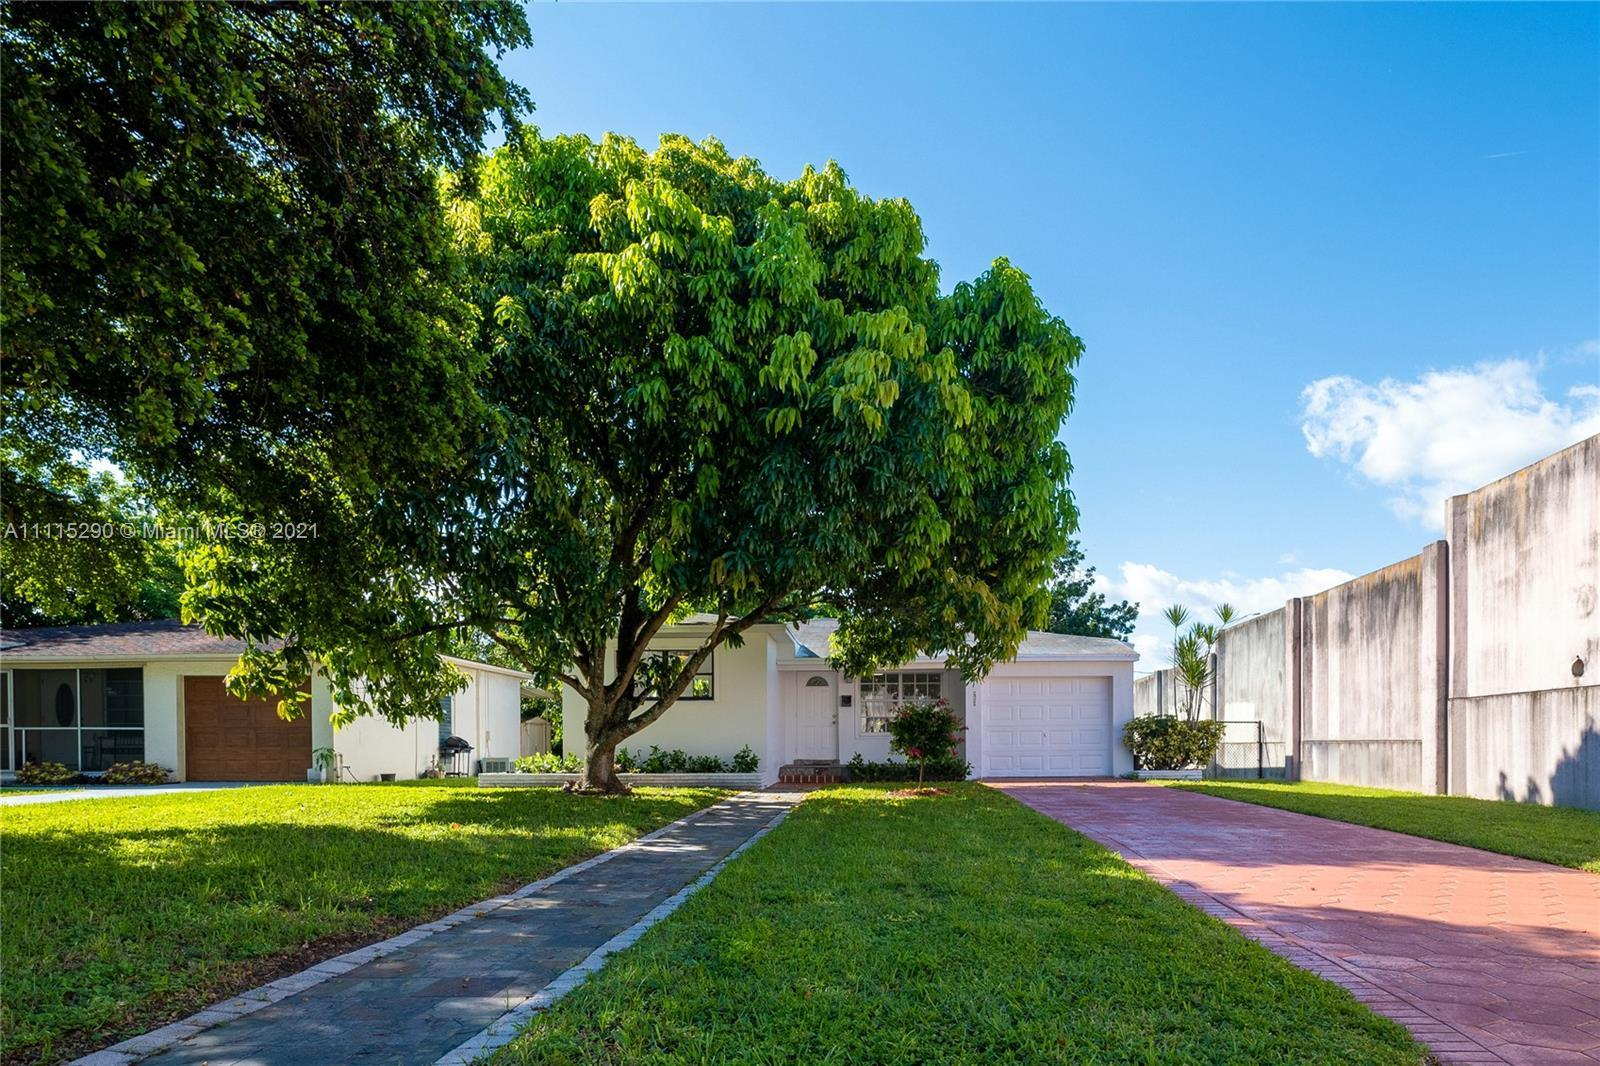 *OPEN HOUSE THIS SATURDAY, OCTOBER 23, 2021. 12 PM - 2 PM* Gorgeous single-family home in Hollywood!